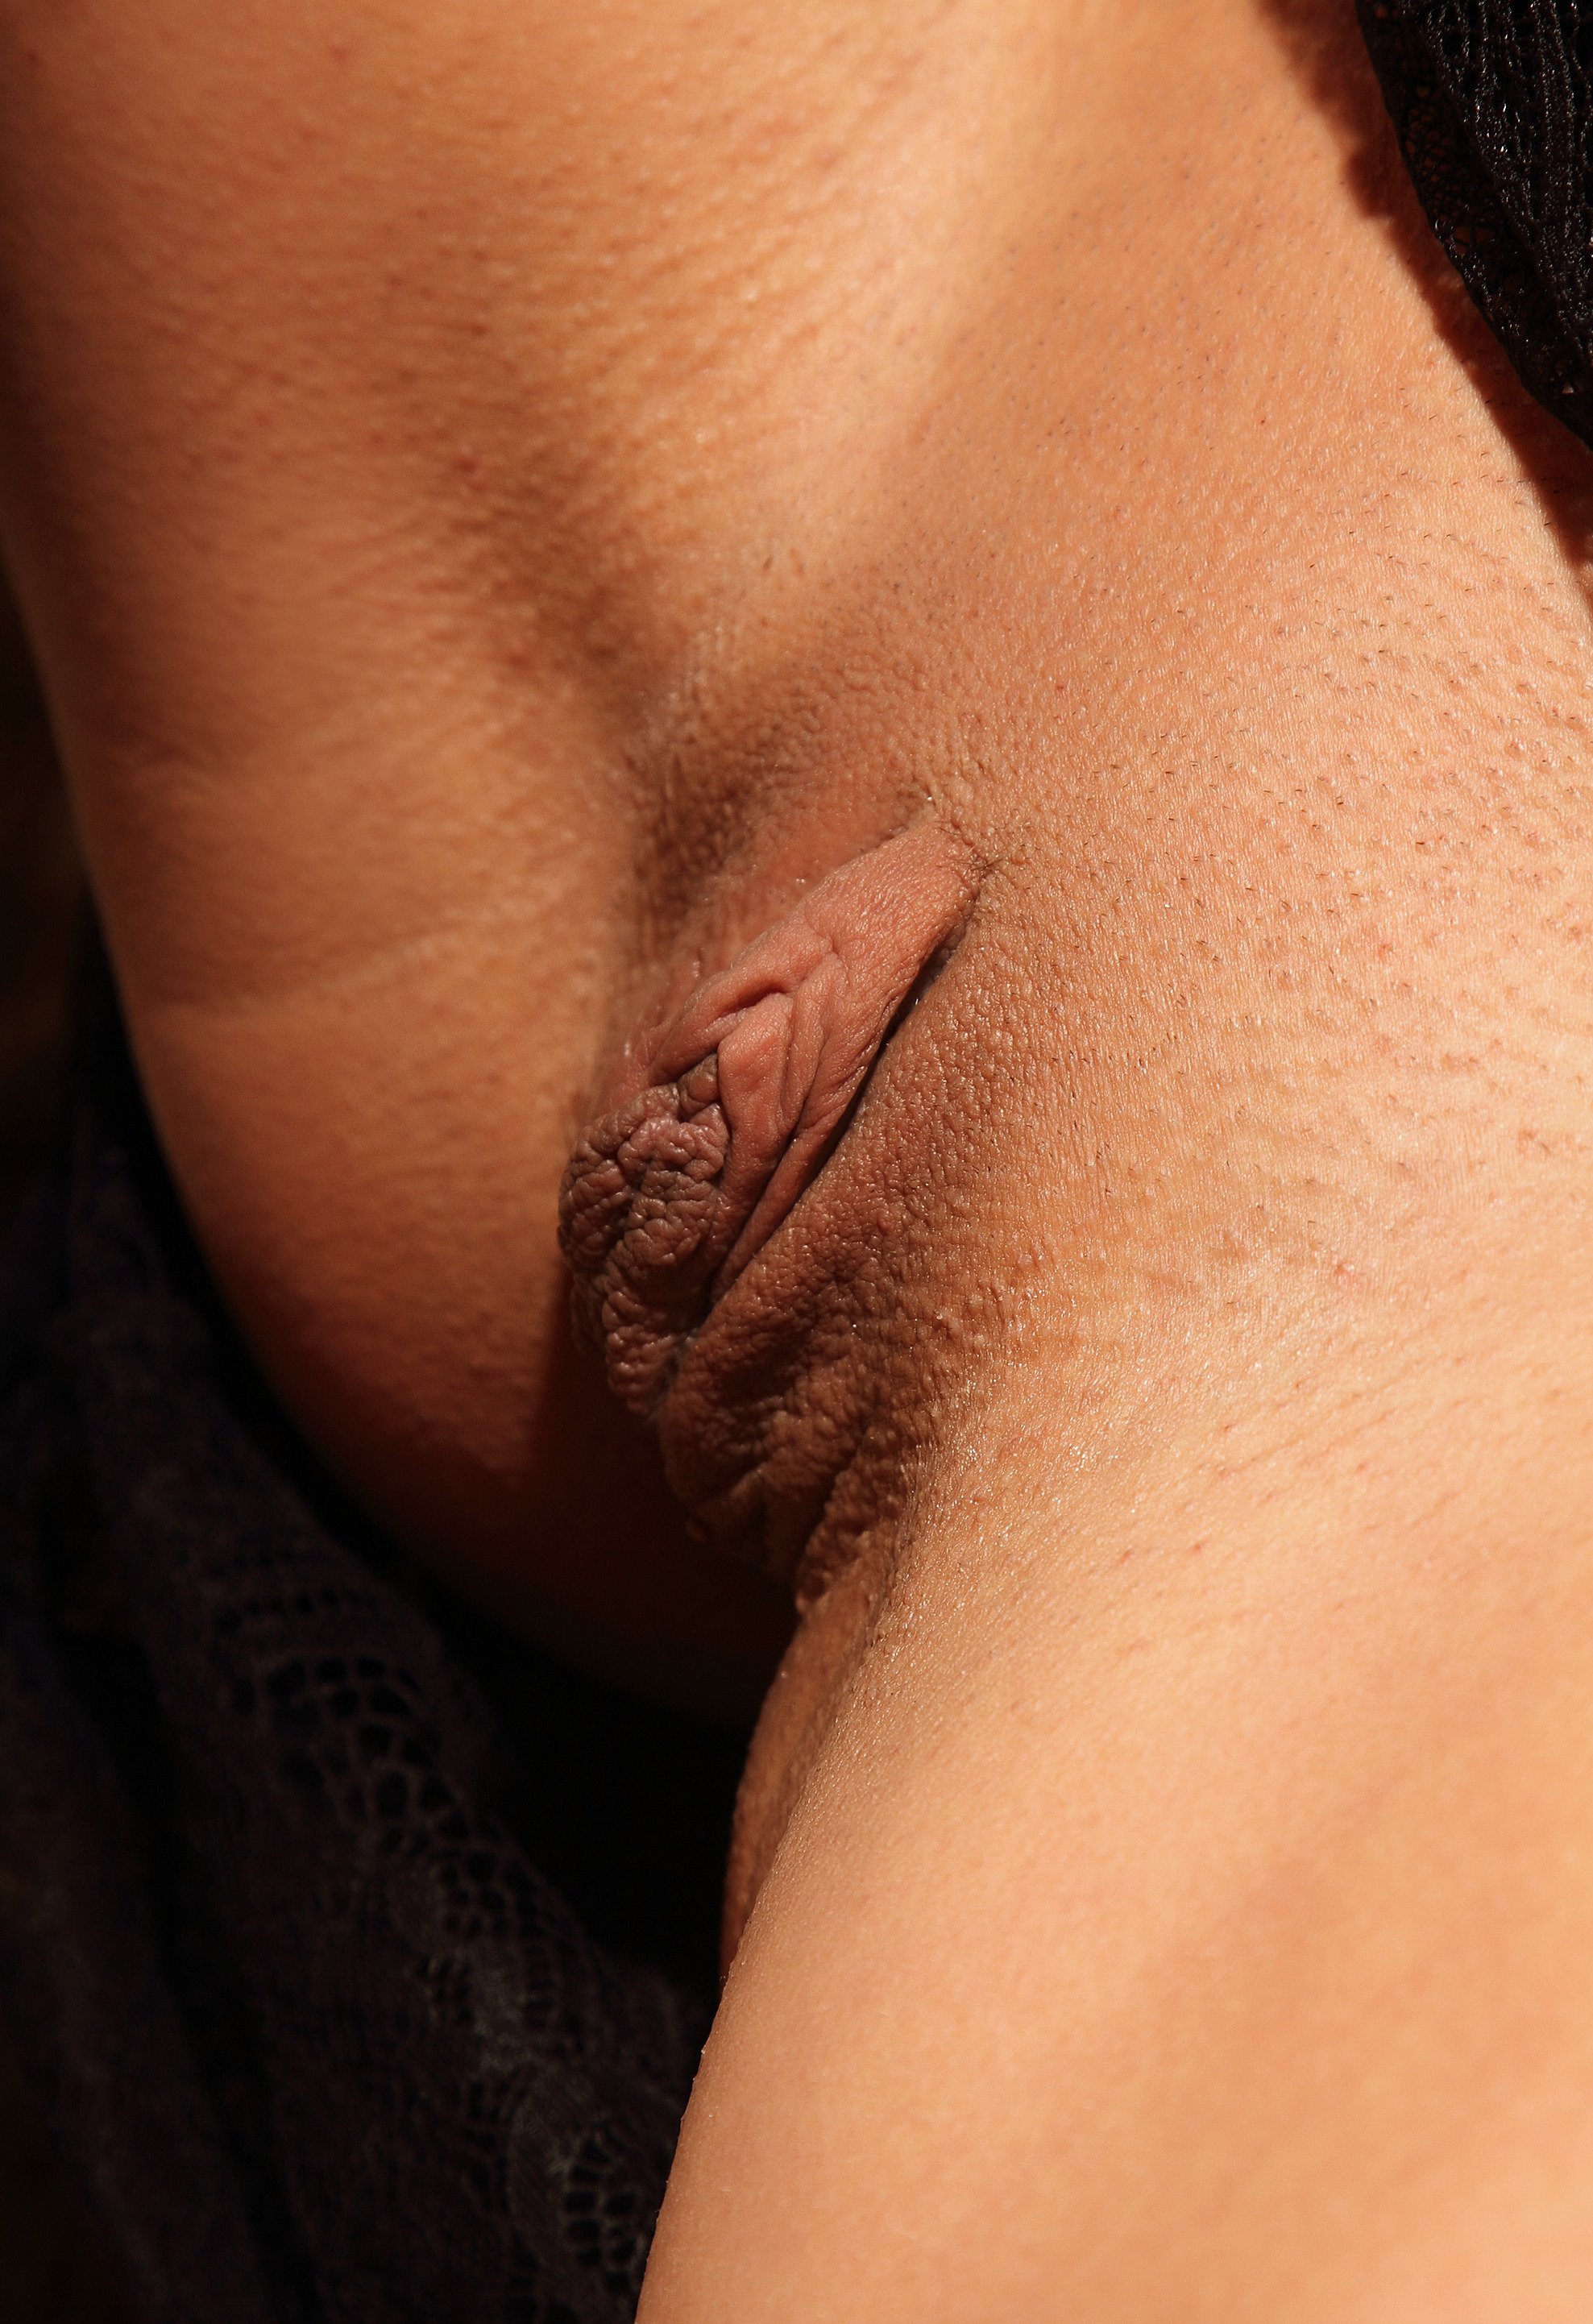 pussy-zoom-close-up-vagina-mix-vol10-59